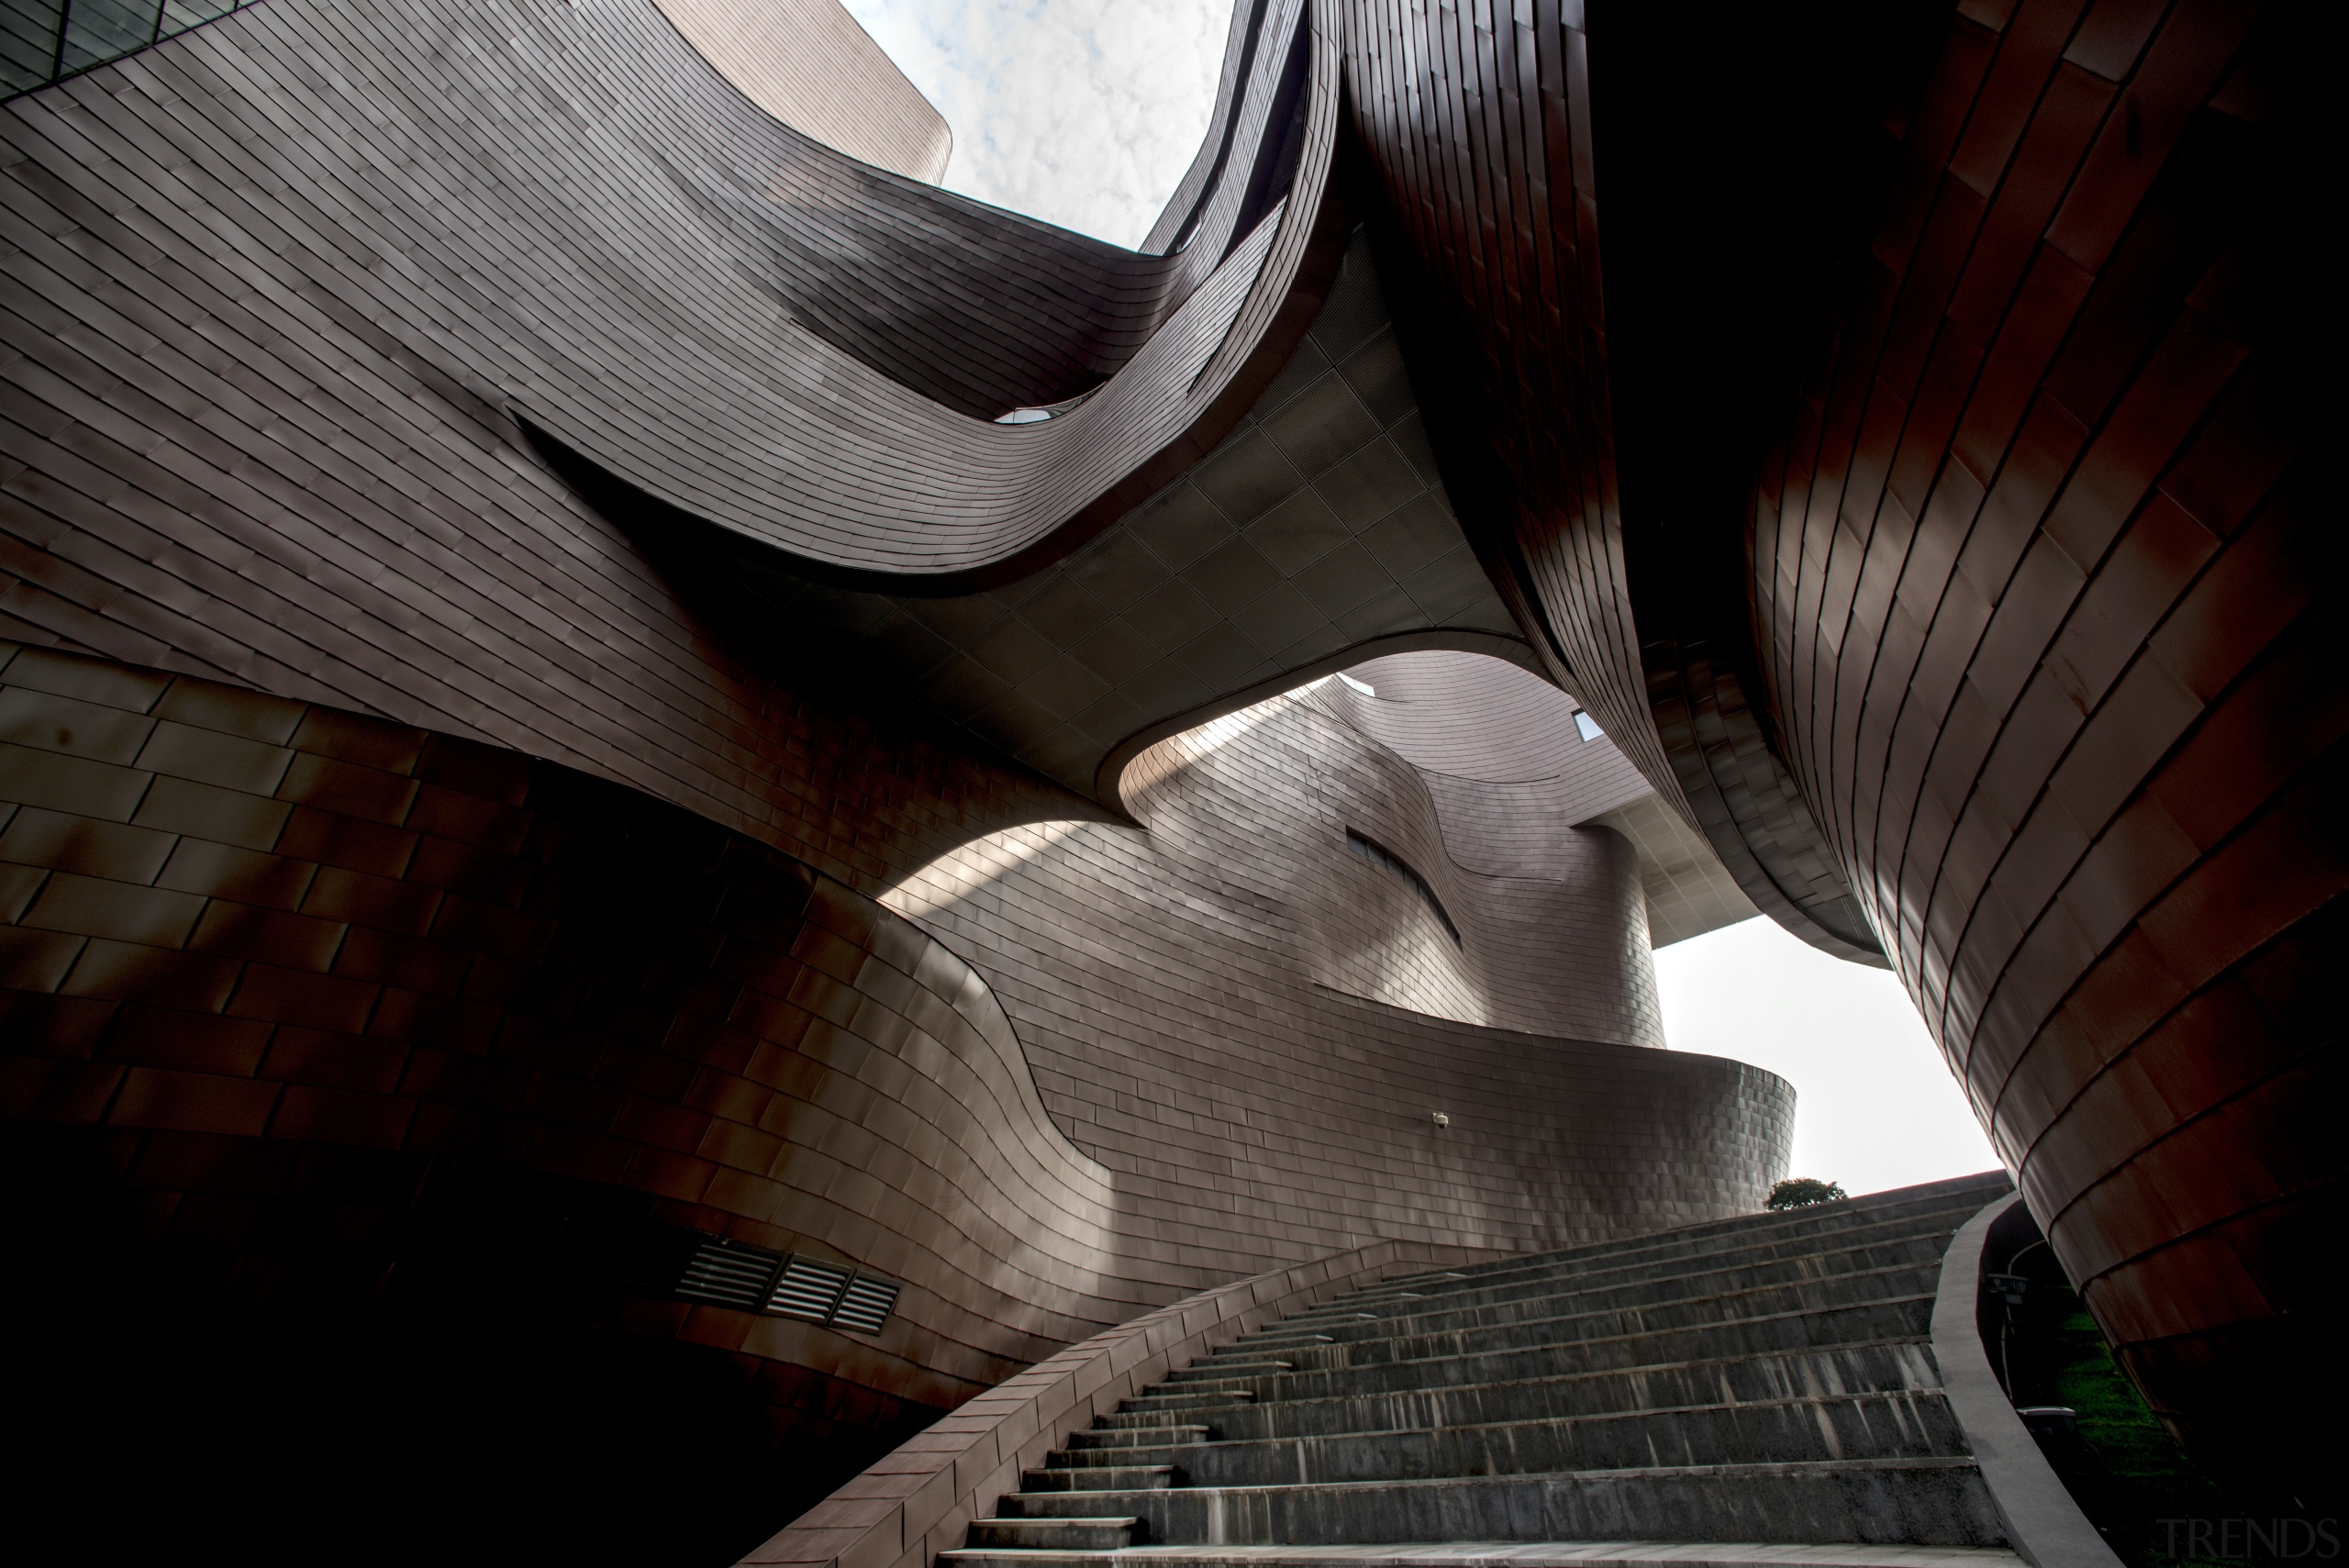 The void in the Xian Jiaotong-Liverpool University Administration architecture, darkness, light, black